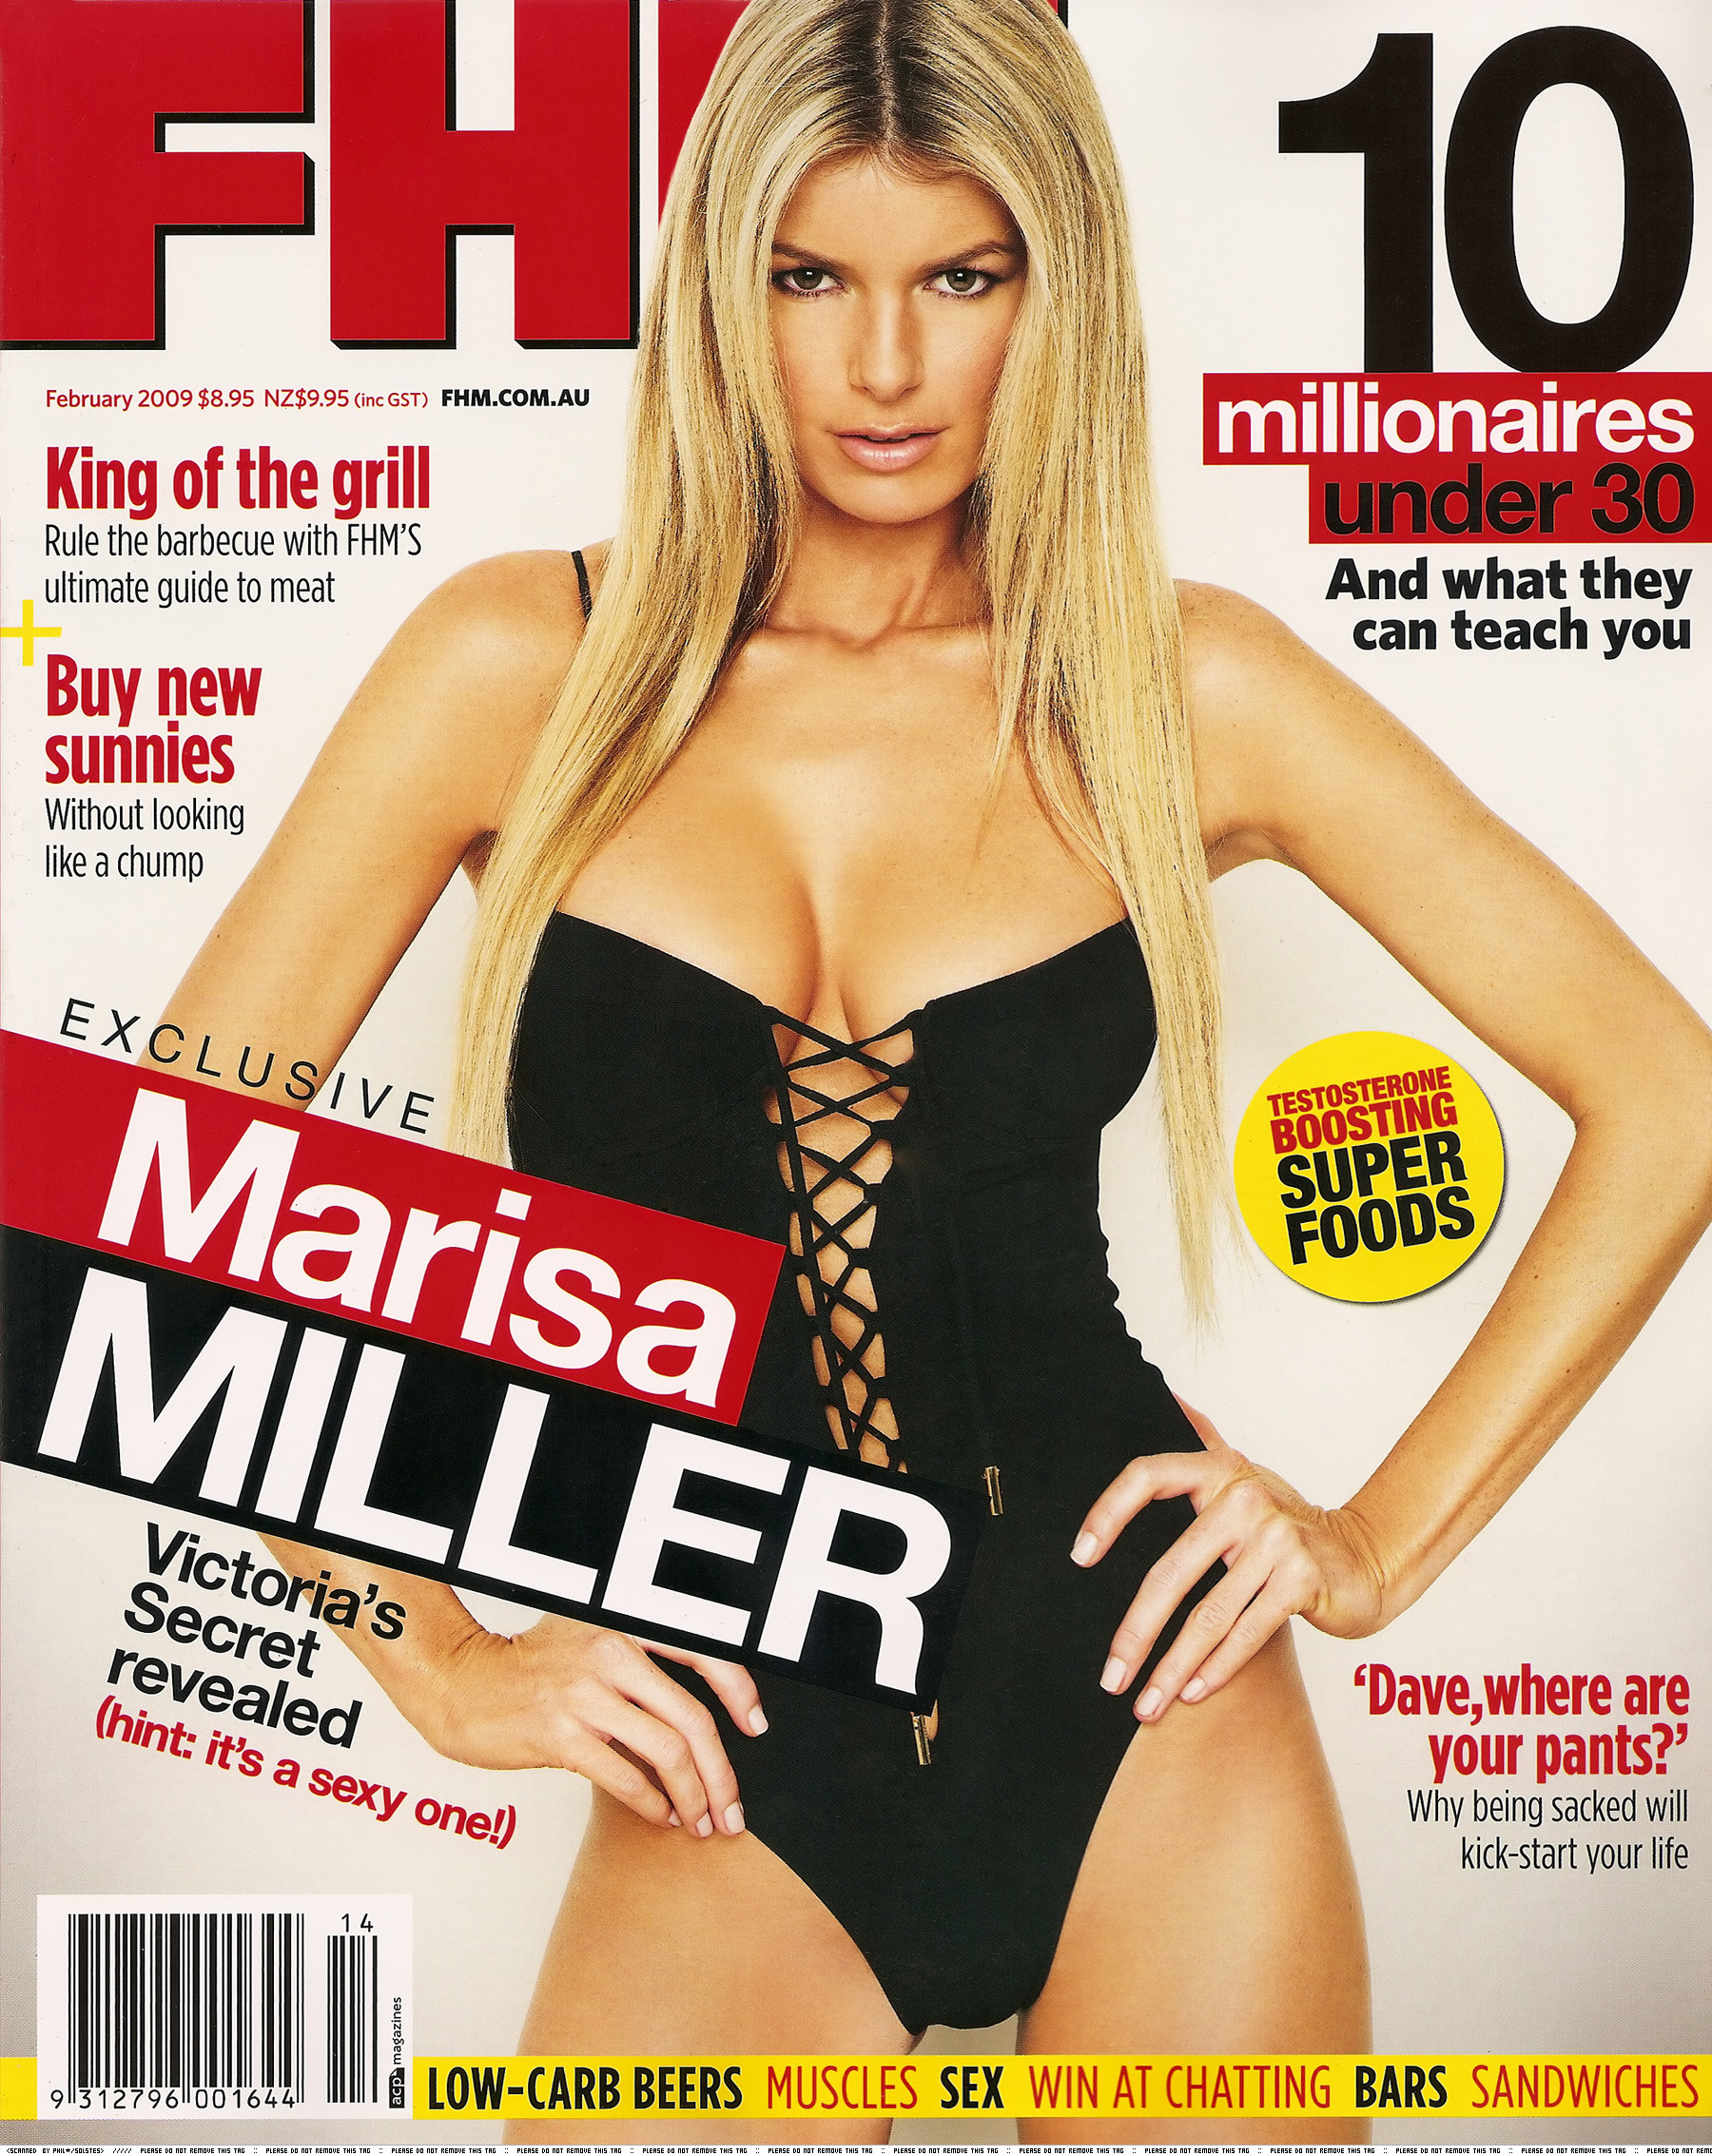 Res: 1800x2267, marisamiller-fhmausfeb09-01.jpg ...